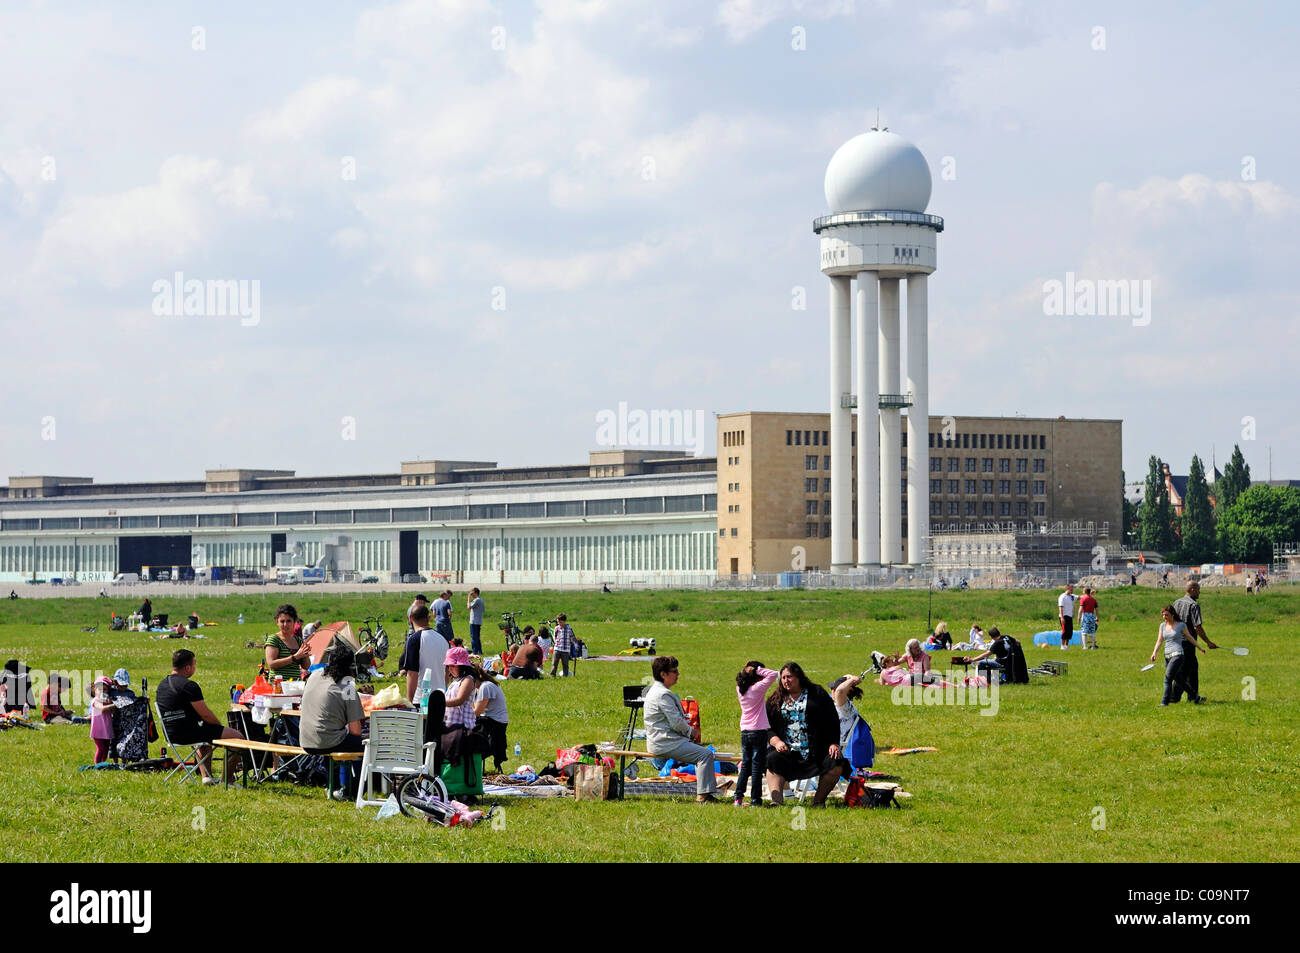 Families at a barbecueing area, in the back the radar tower of Tempelhof Airport, handed over to the public in May - Stock Image